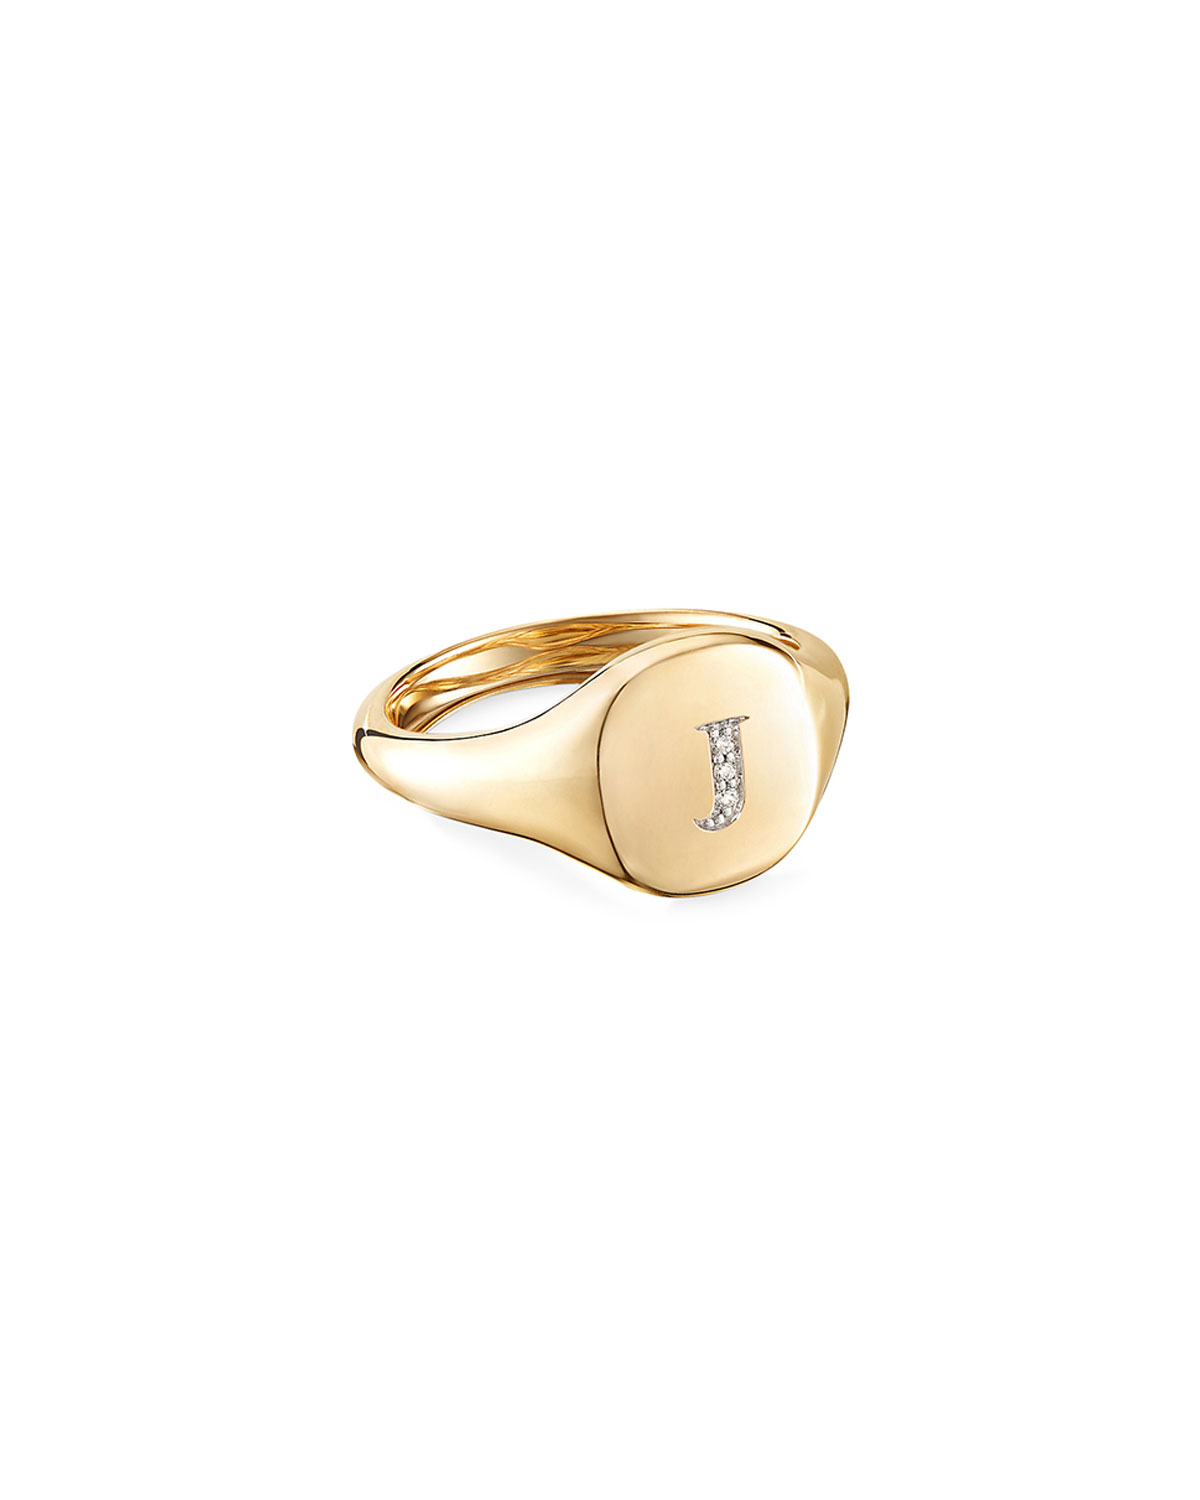 David Yurman Mini DY Initial J Pinky Ring in 18K Yellow Gold with Diamonds, Size 3